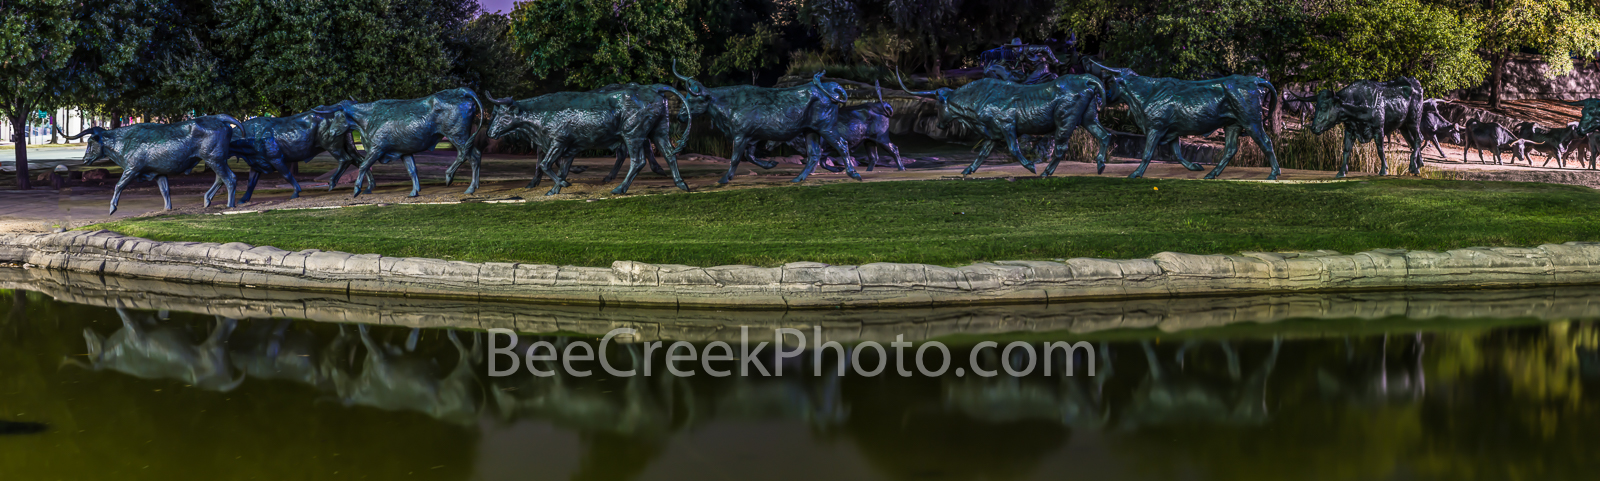 Dallas, Pioneer Plaza Park, downtown dallas, reflections, cattle drive, pioneer park, pioneer plaza, water, longhorns, longhorn, art scuplture,, photo